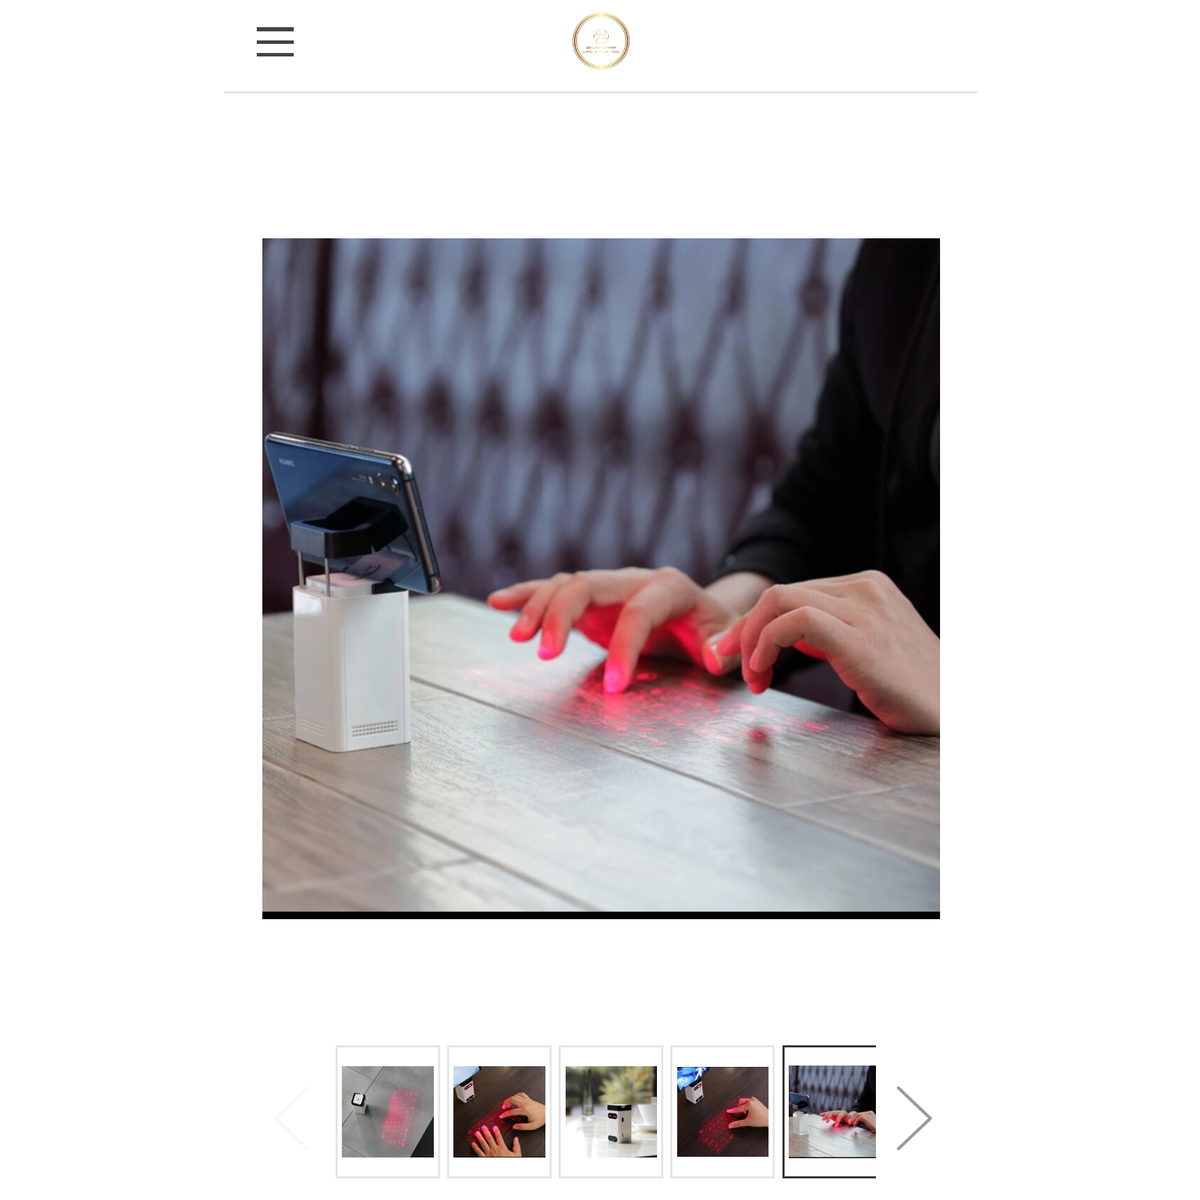 Lazer Projection Keyboard